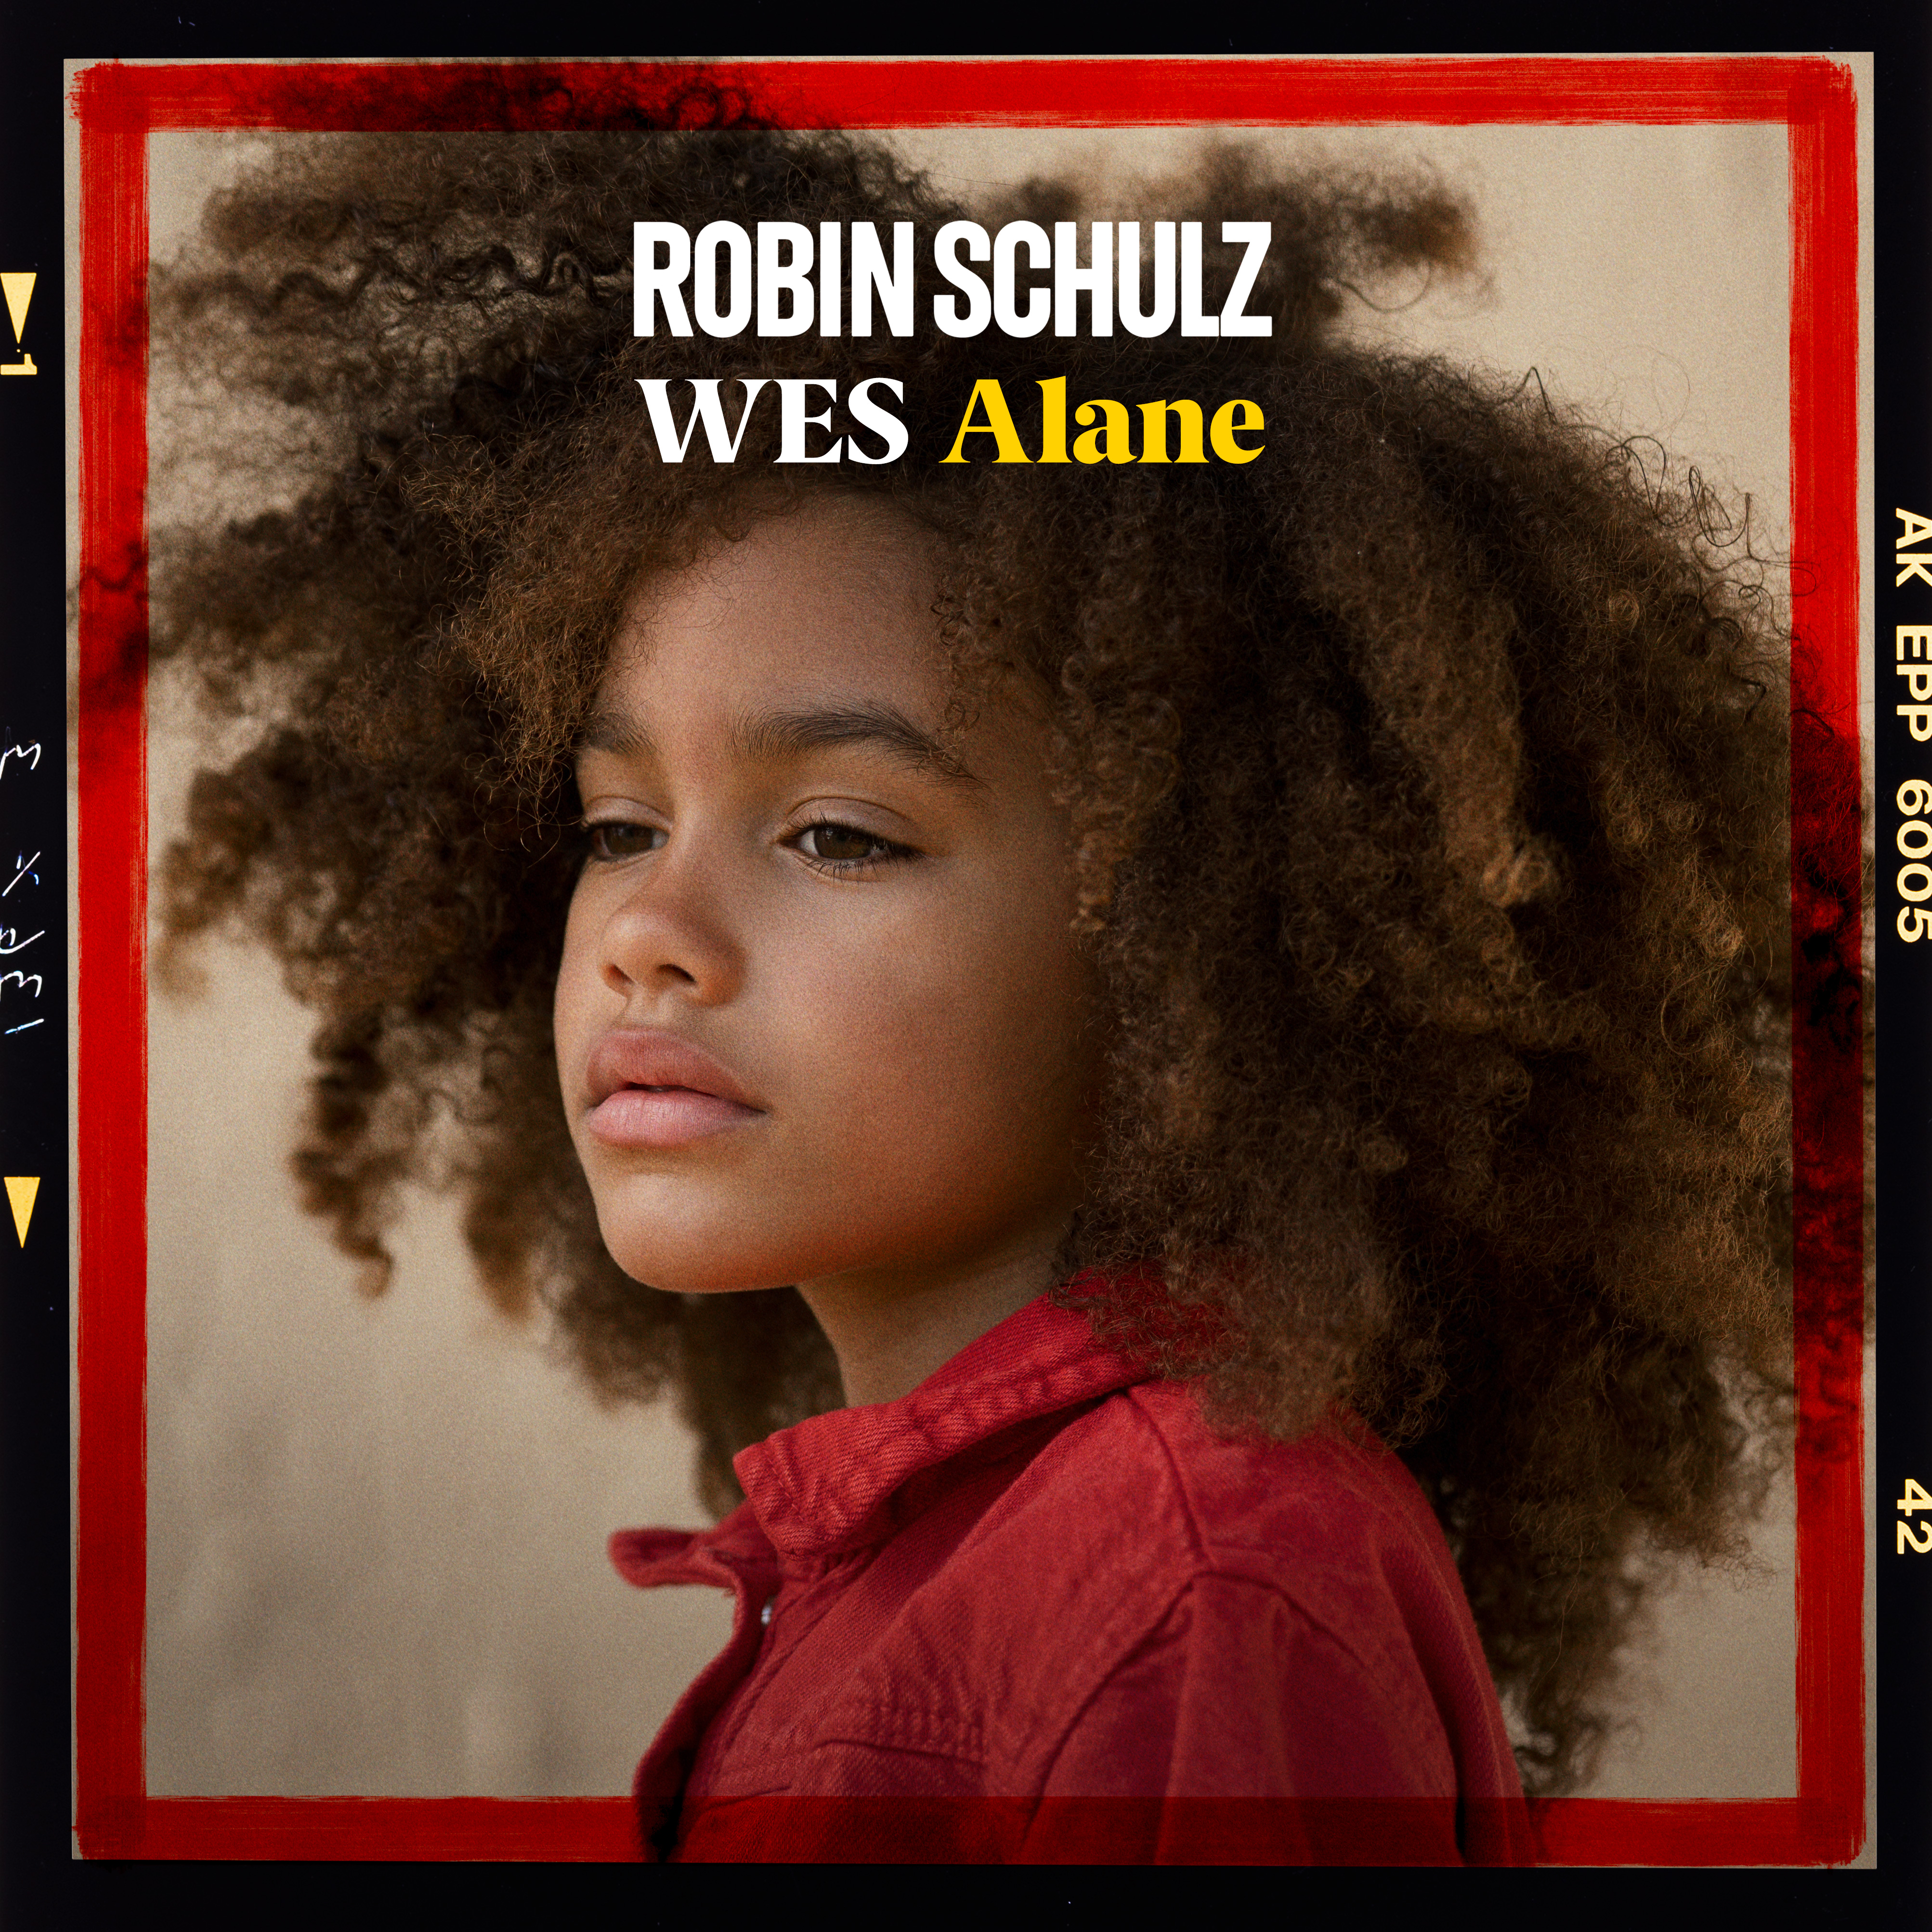 Robin Schulz - Alane (Feat Wes)